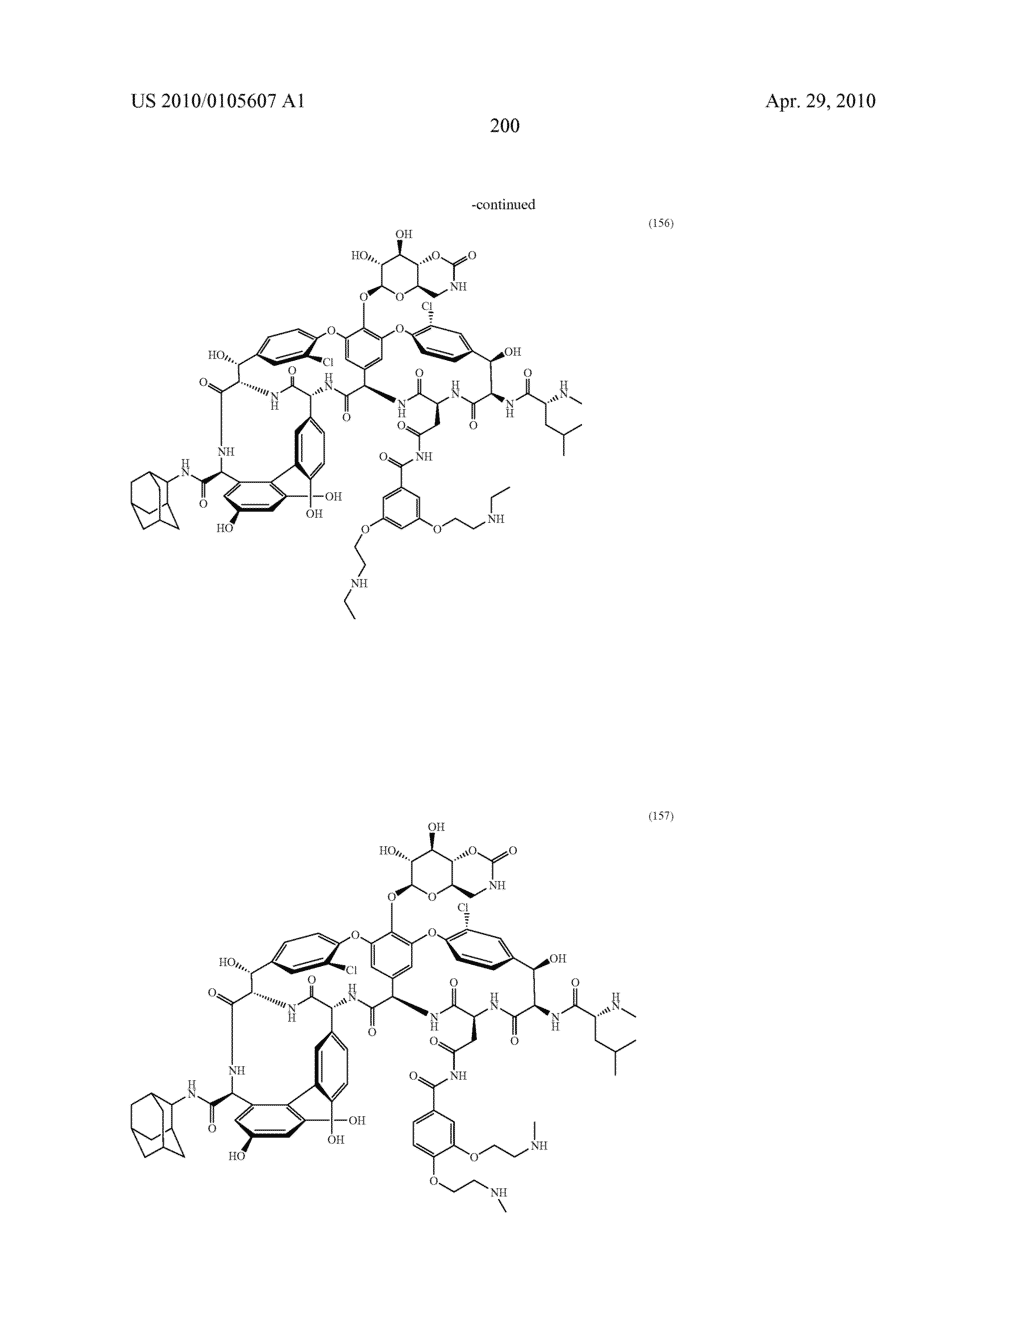 NOVEL SEMI-SYNTHETIC GLYCOPEPTIDES AS ANTIBACTERIAL AGENTS - diagram, schematic, and image 200